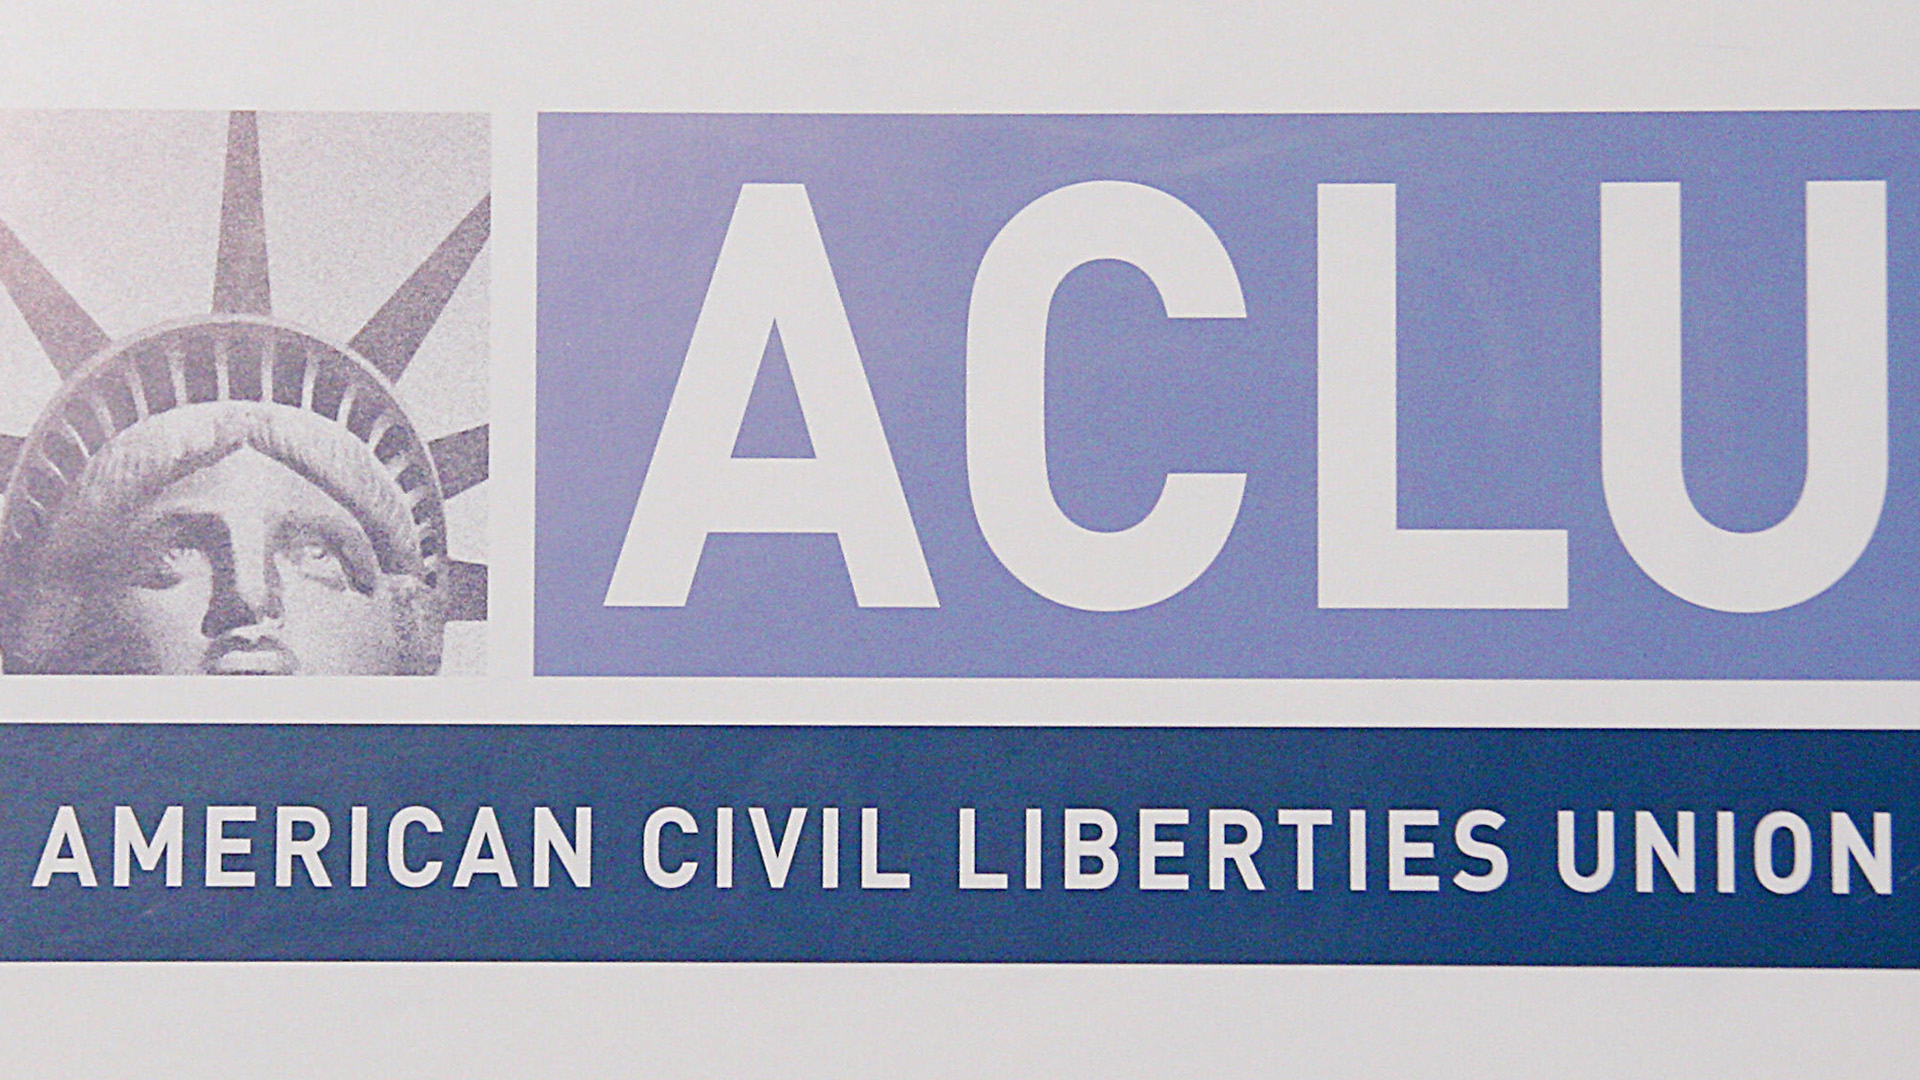 A sign for the American Civil Liberties Union (ACLU) is seen at a press conference in 2006. (Credit: KAREN BLEIER/AFP/Getty Images)